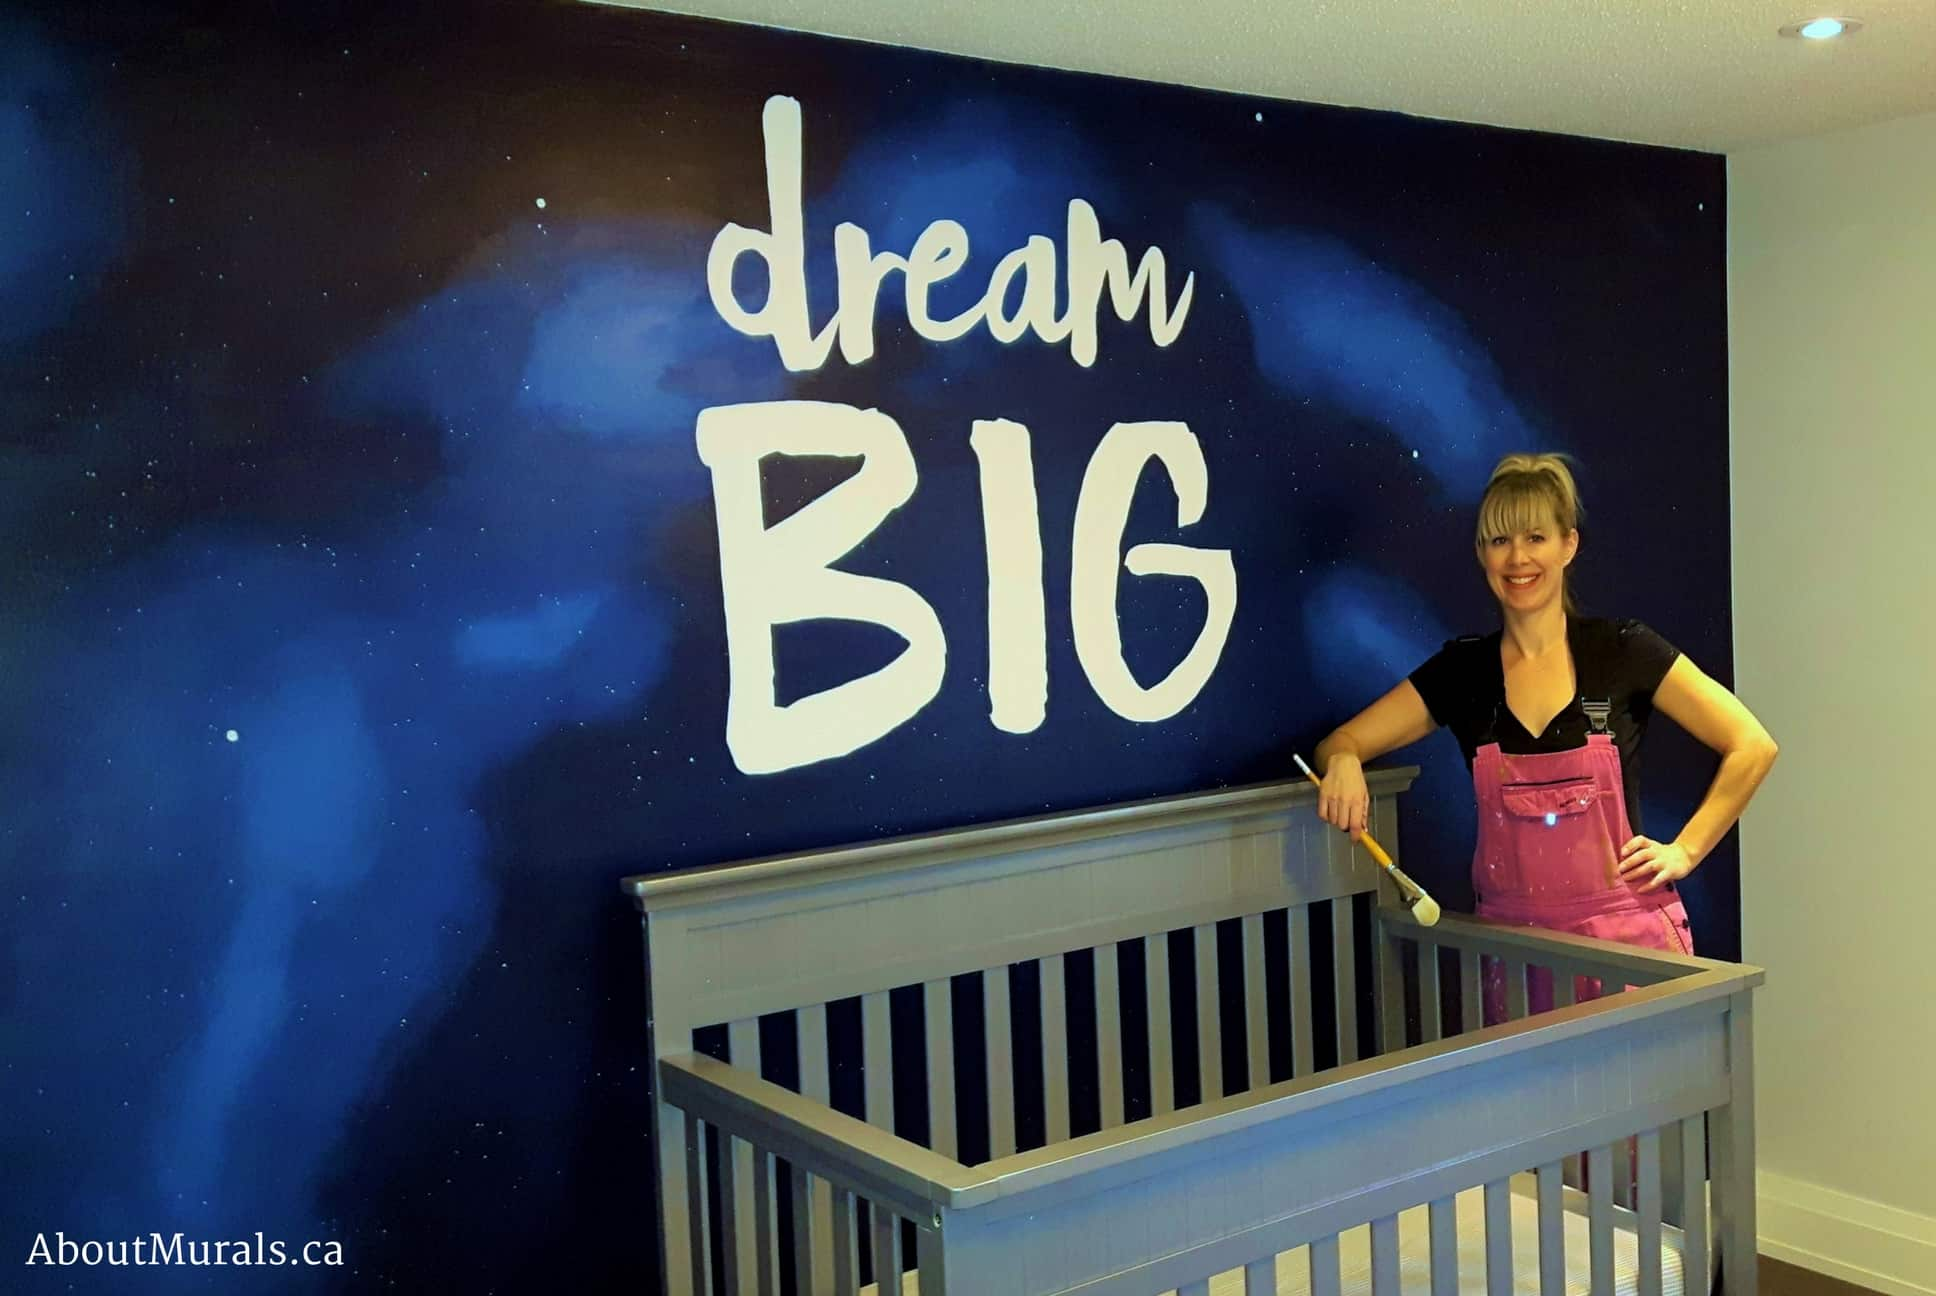 Mural painter Adrienne Scanlan stands next to a kids wall mural featuring the words Dream Big painted over an outer space sky